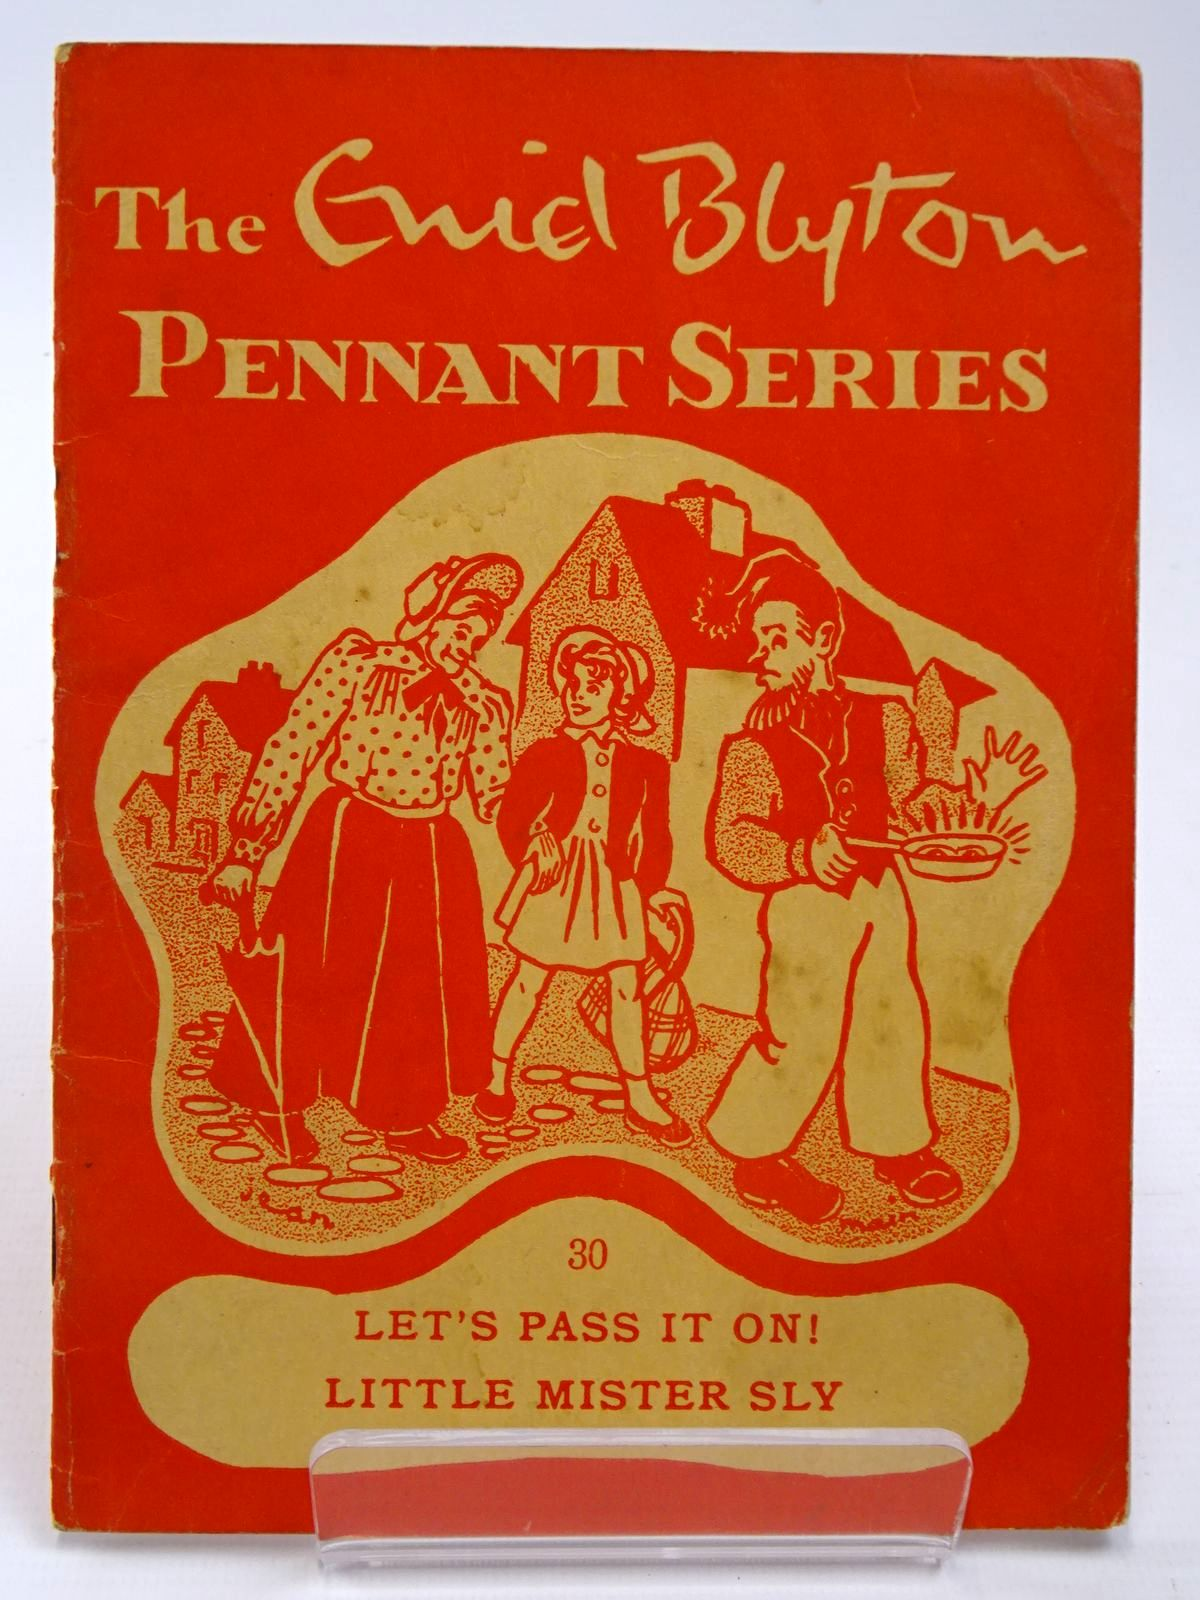 Photo of THE ENID BLYTON PENNANT SERIES No. 30 LET'S PASS IT ON! / LITTLE MISTER SLY- Stock Number: 2130525